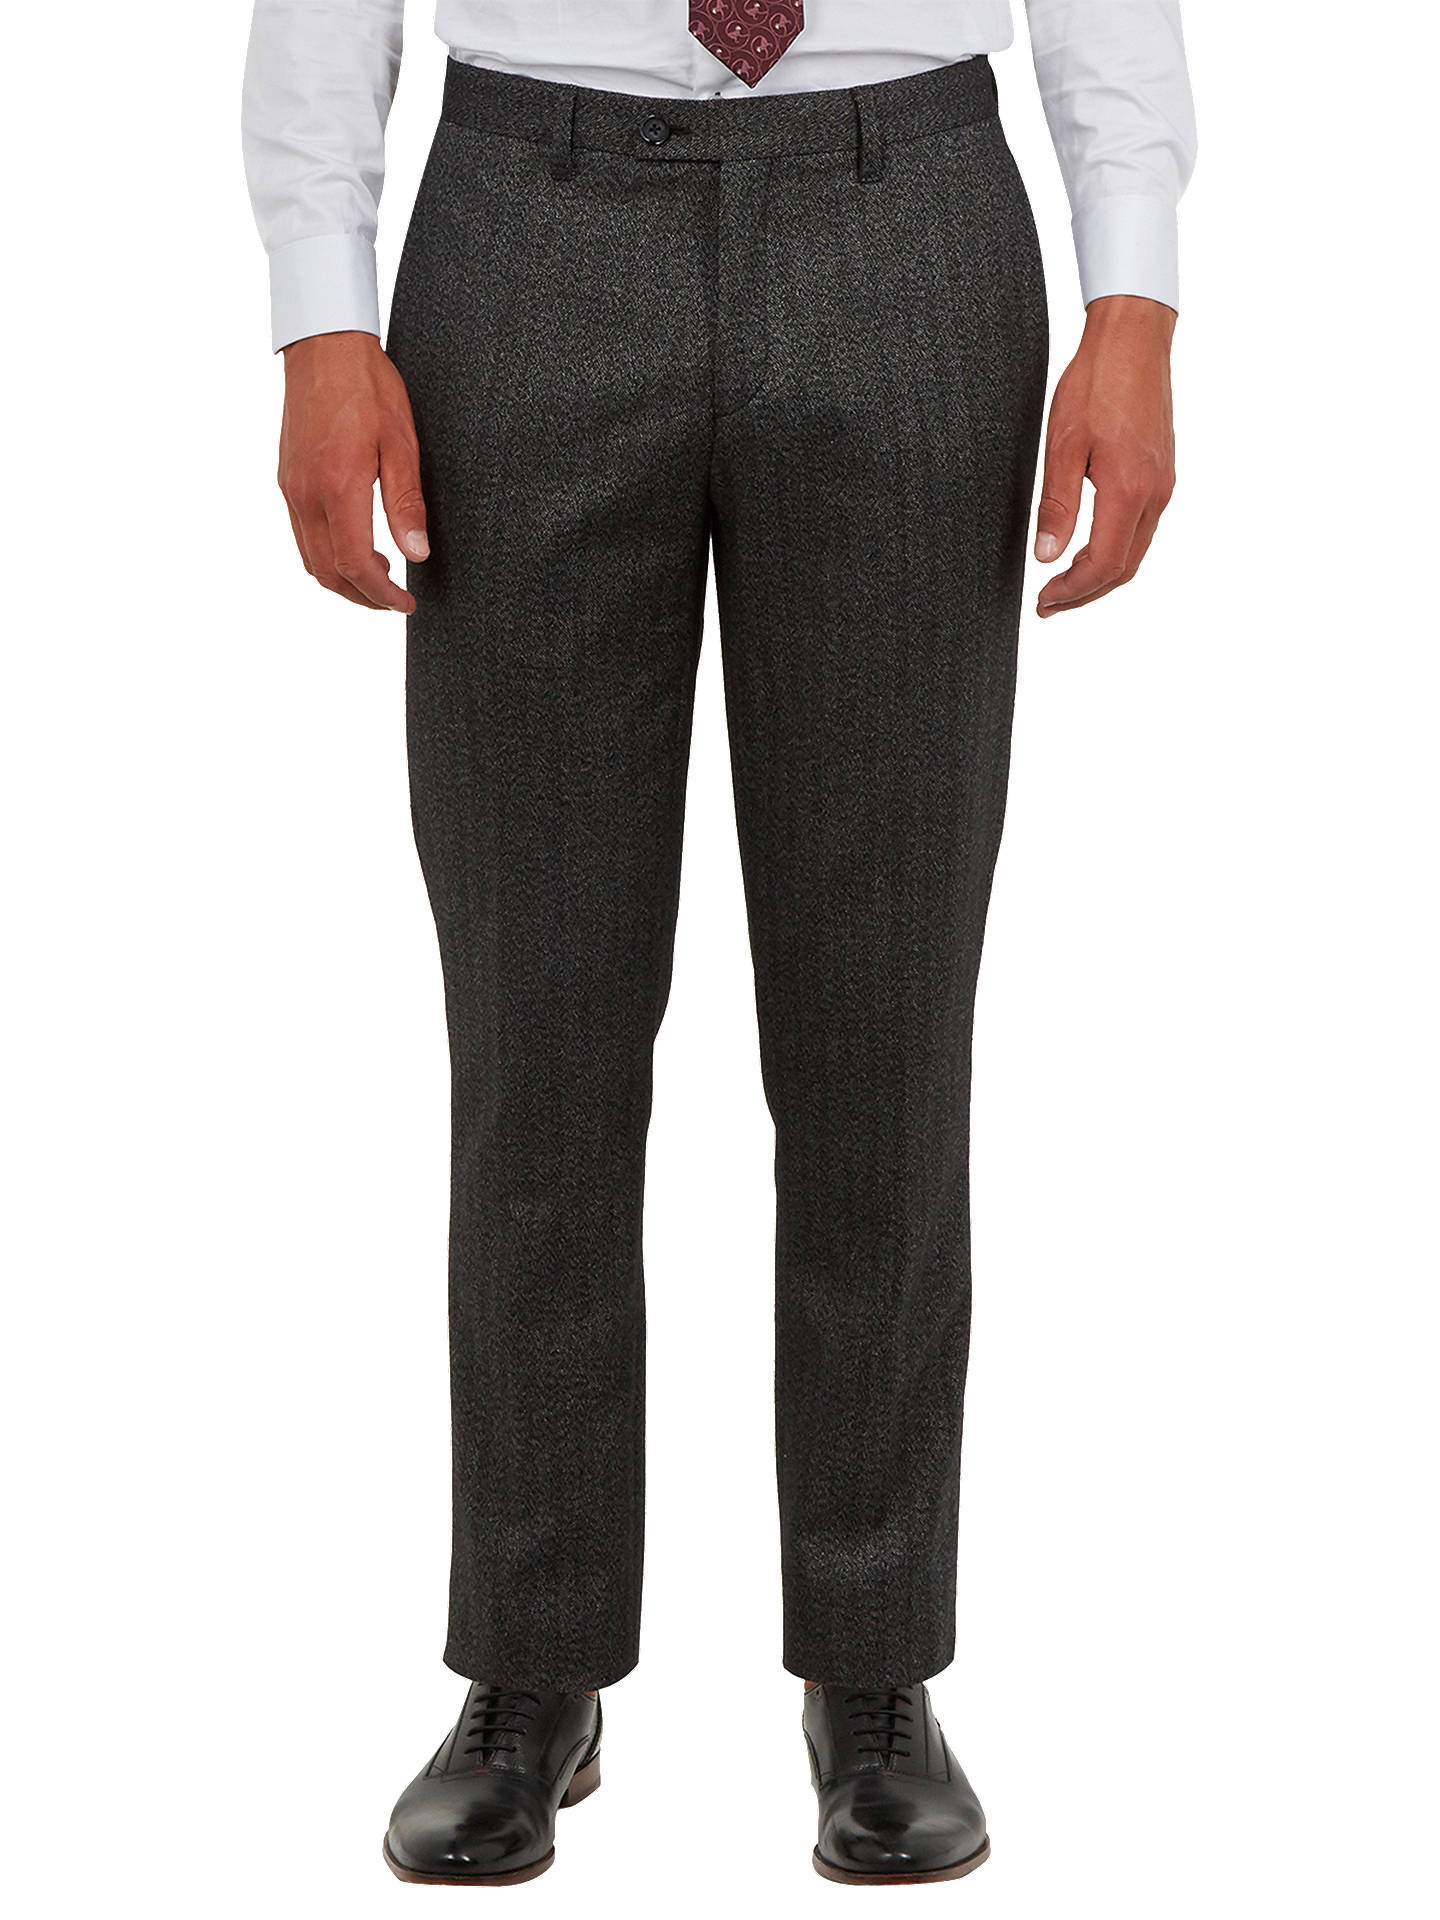 Ted Baker Wenstro Trousers Charcoal At John Lewis Amp Partners